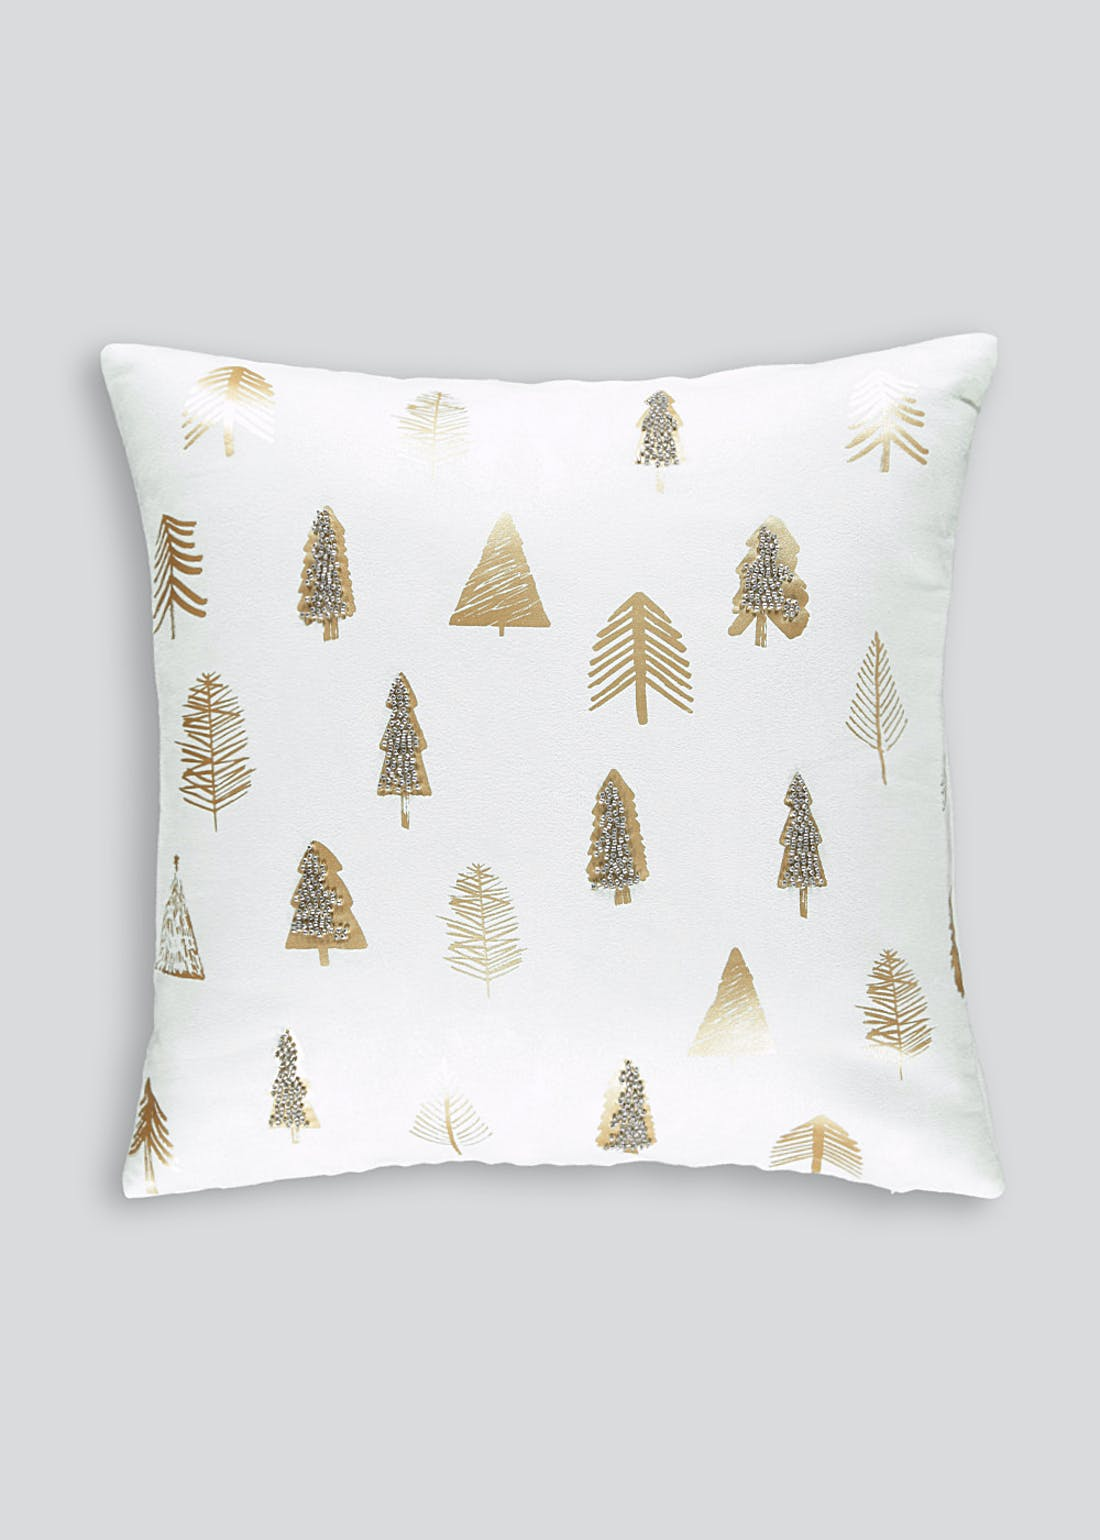 Foil & Beaded Tree Cushion (46cm x 46cm)